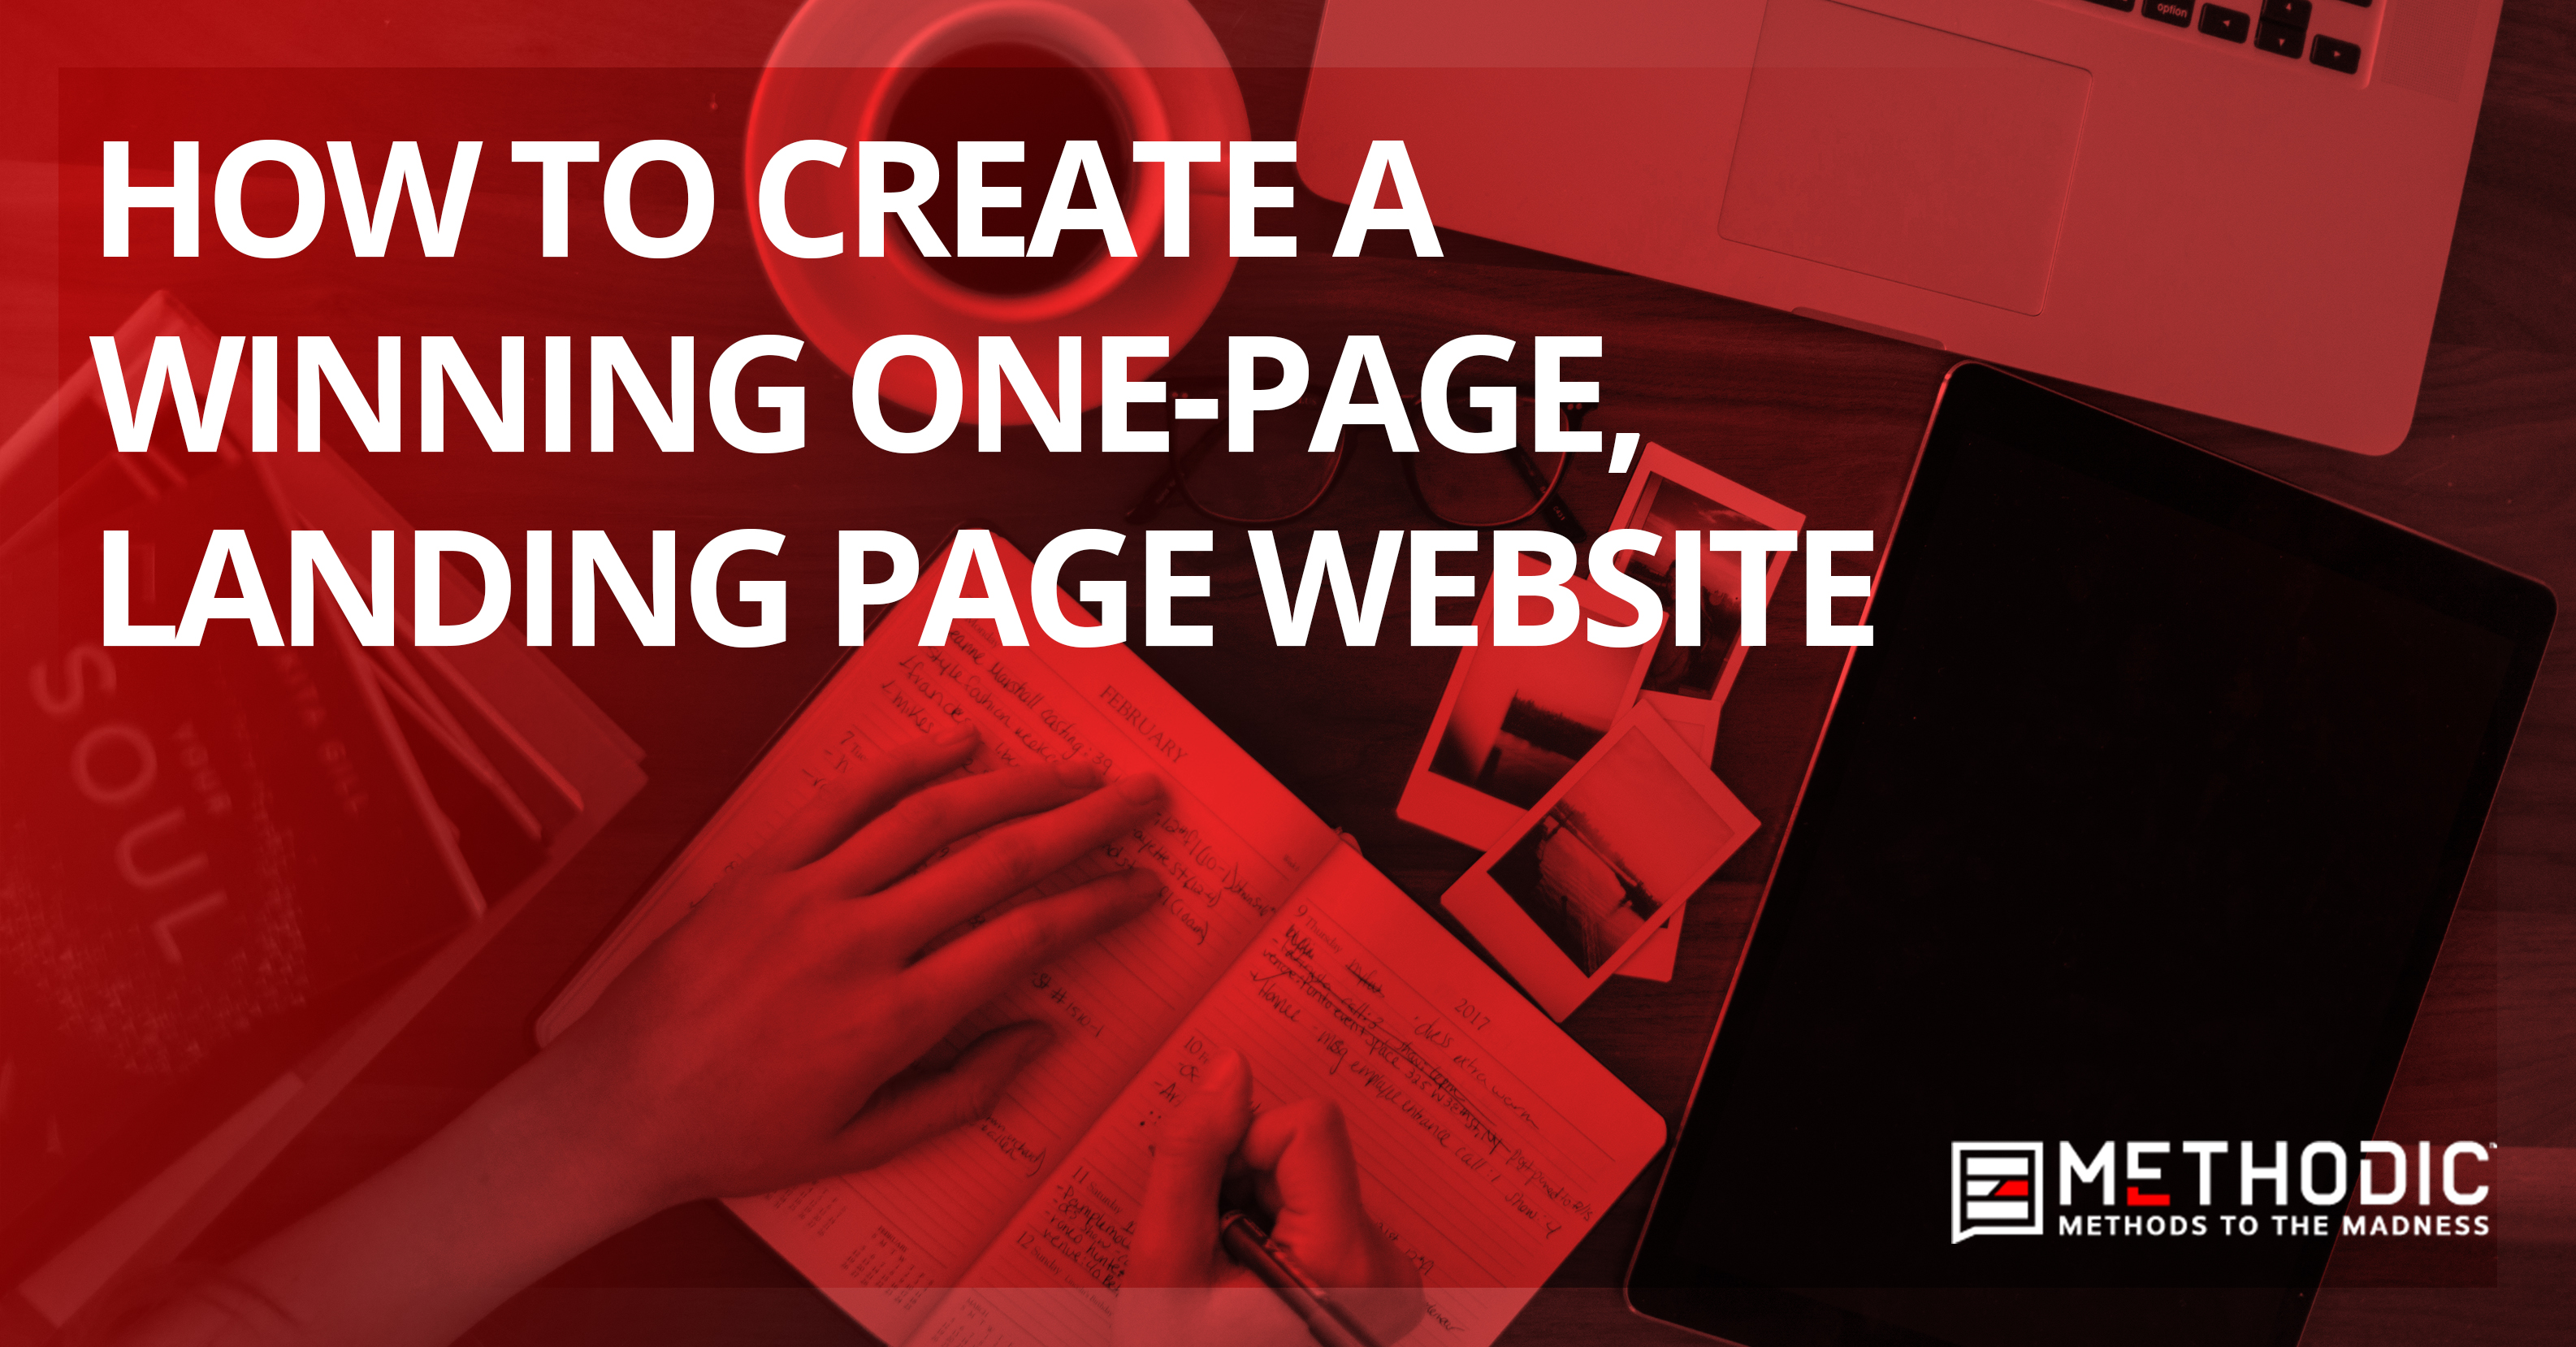 How to Create a Winning One-Page, Landing Page Website